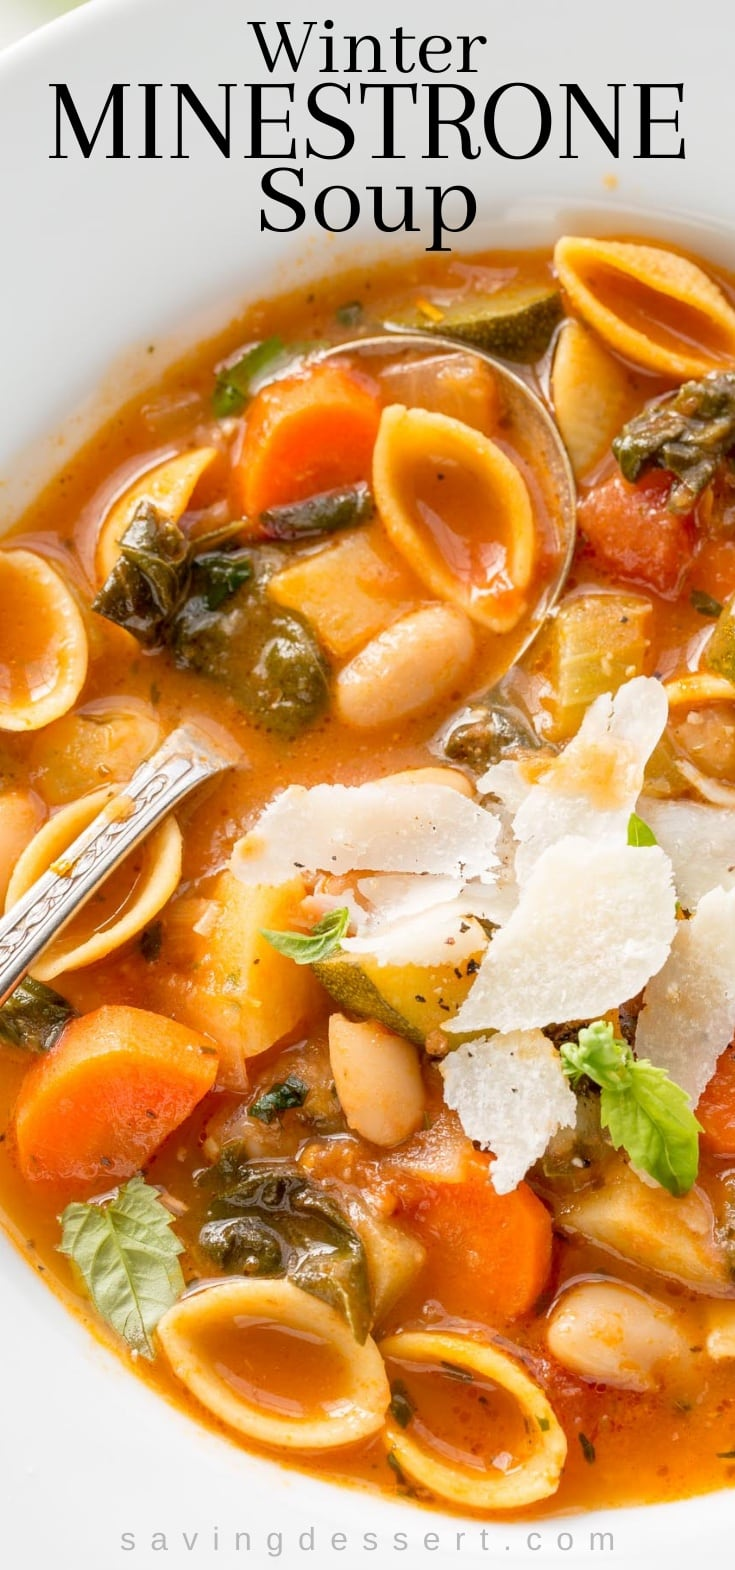 A closeup of a bowl of winter minestrone soup with pasta, beans, greens and herbs